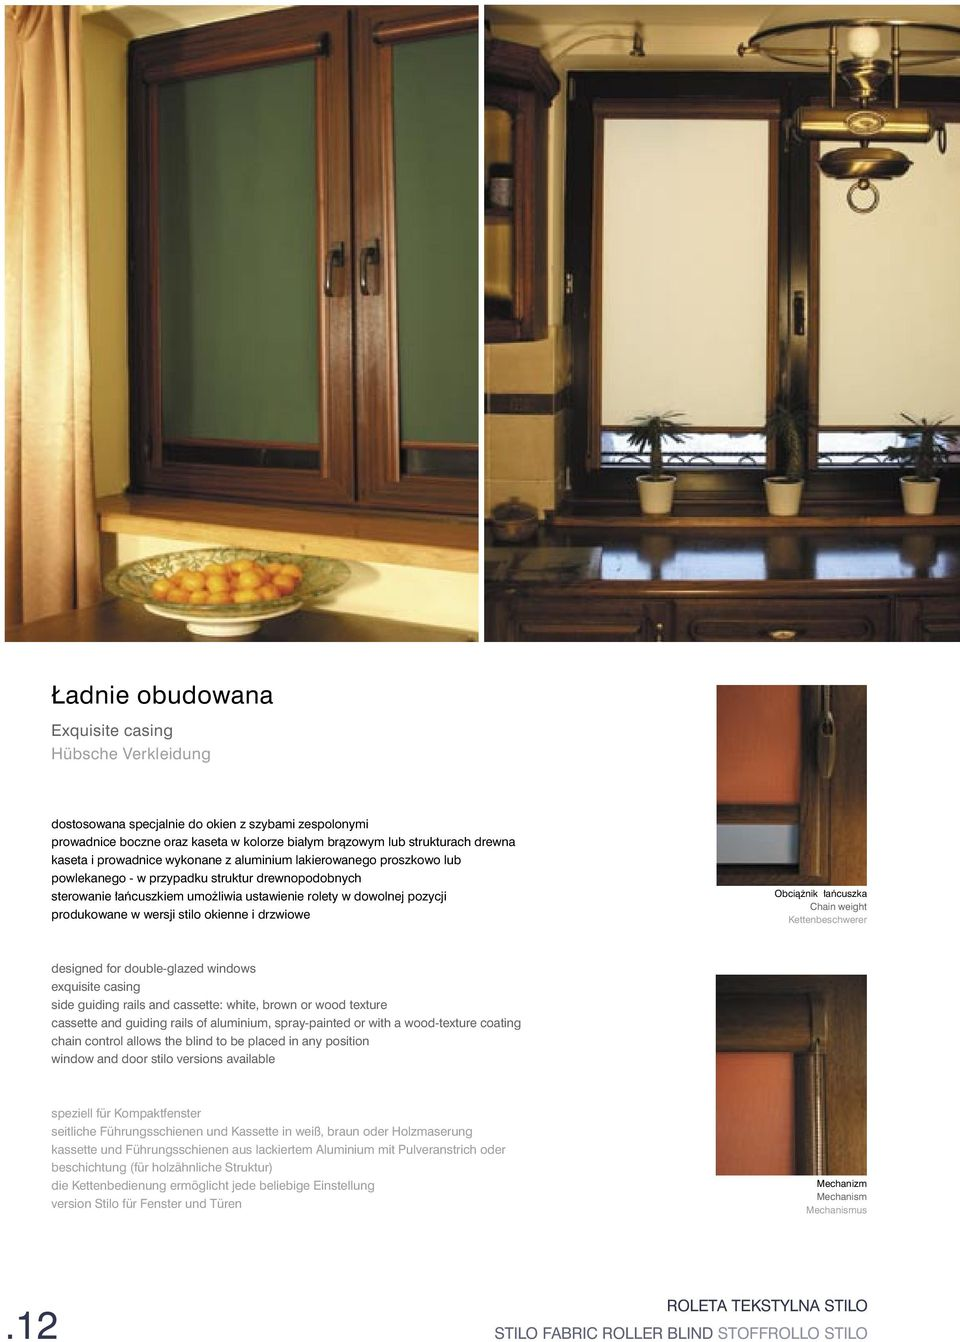 wersji stilo okienne i drzwiowe Obciążnik łańcuszka Chain weight Kettenbeschwerer designed for double-glazed windows exquisite casing side guiding rails and cassette: white, brown or wood texture